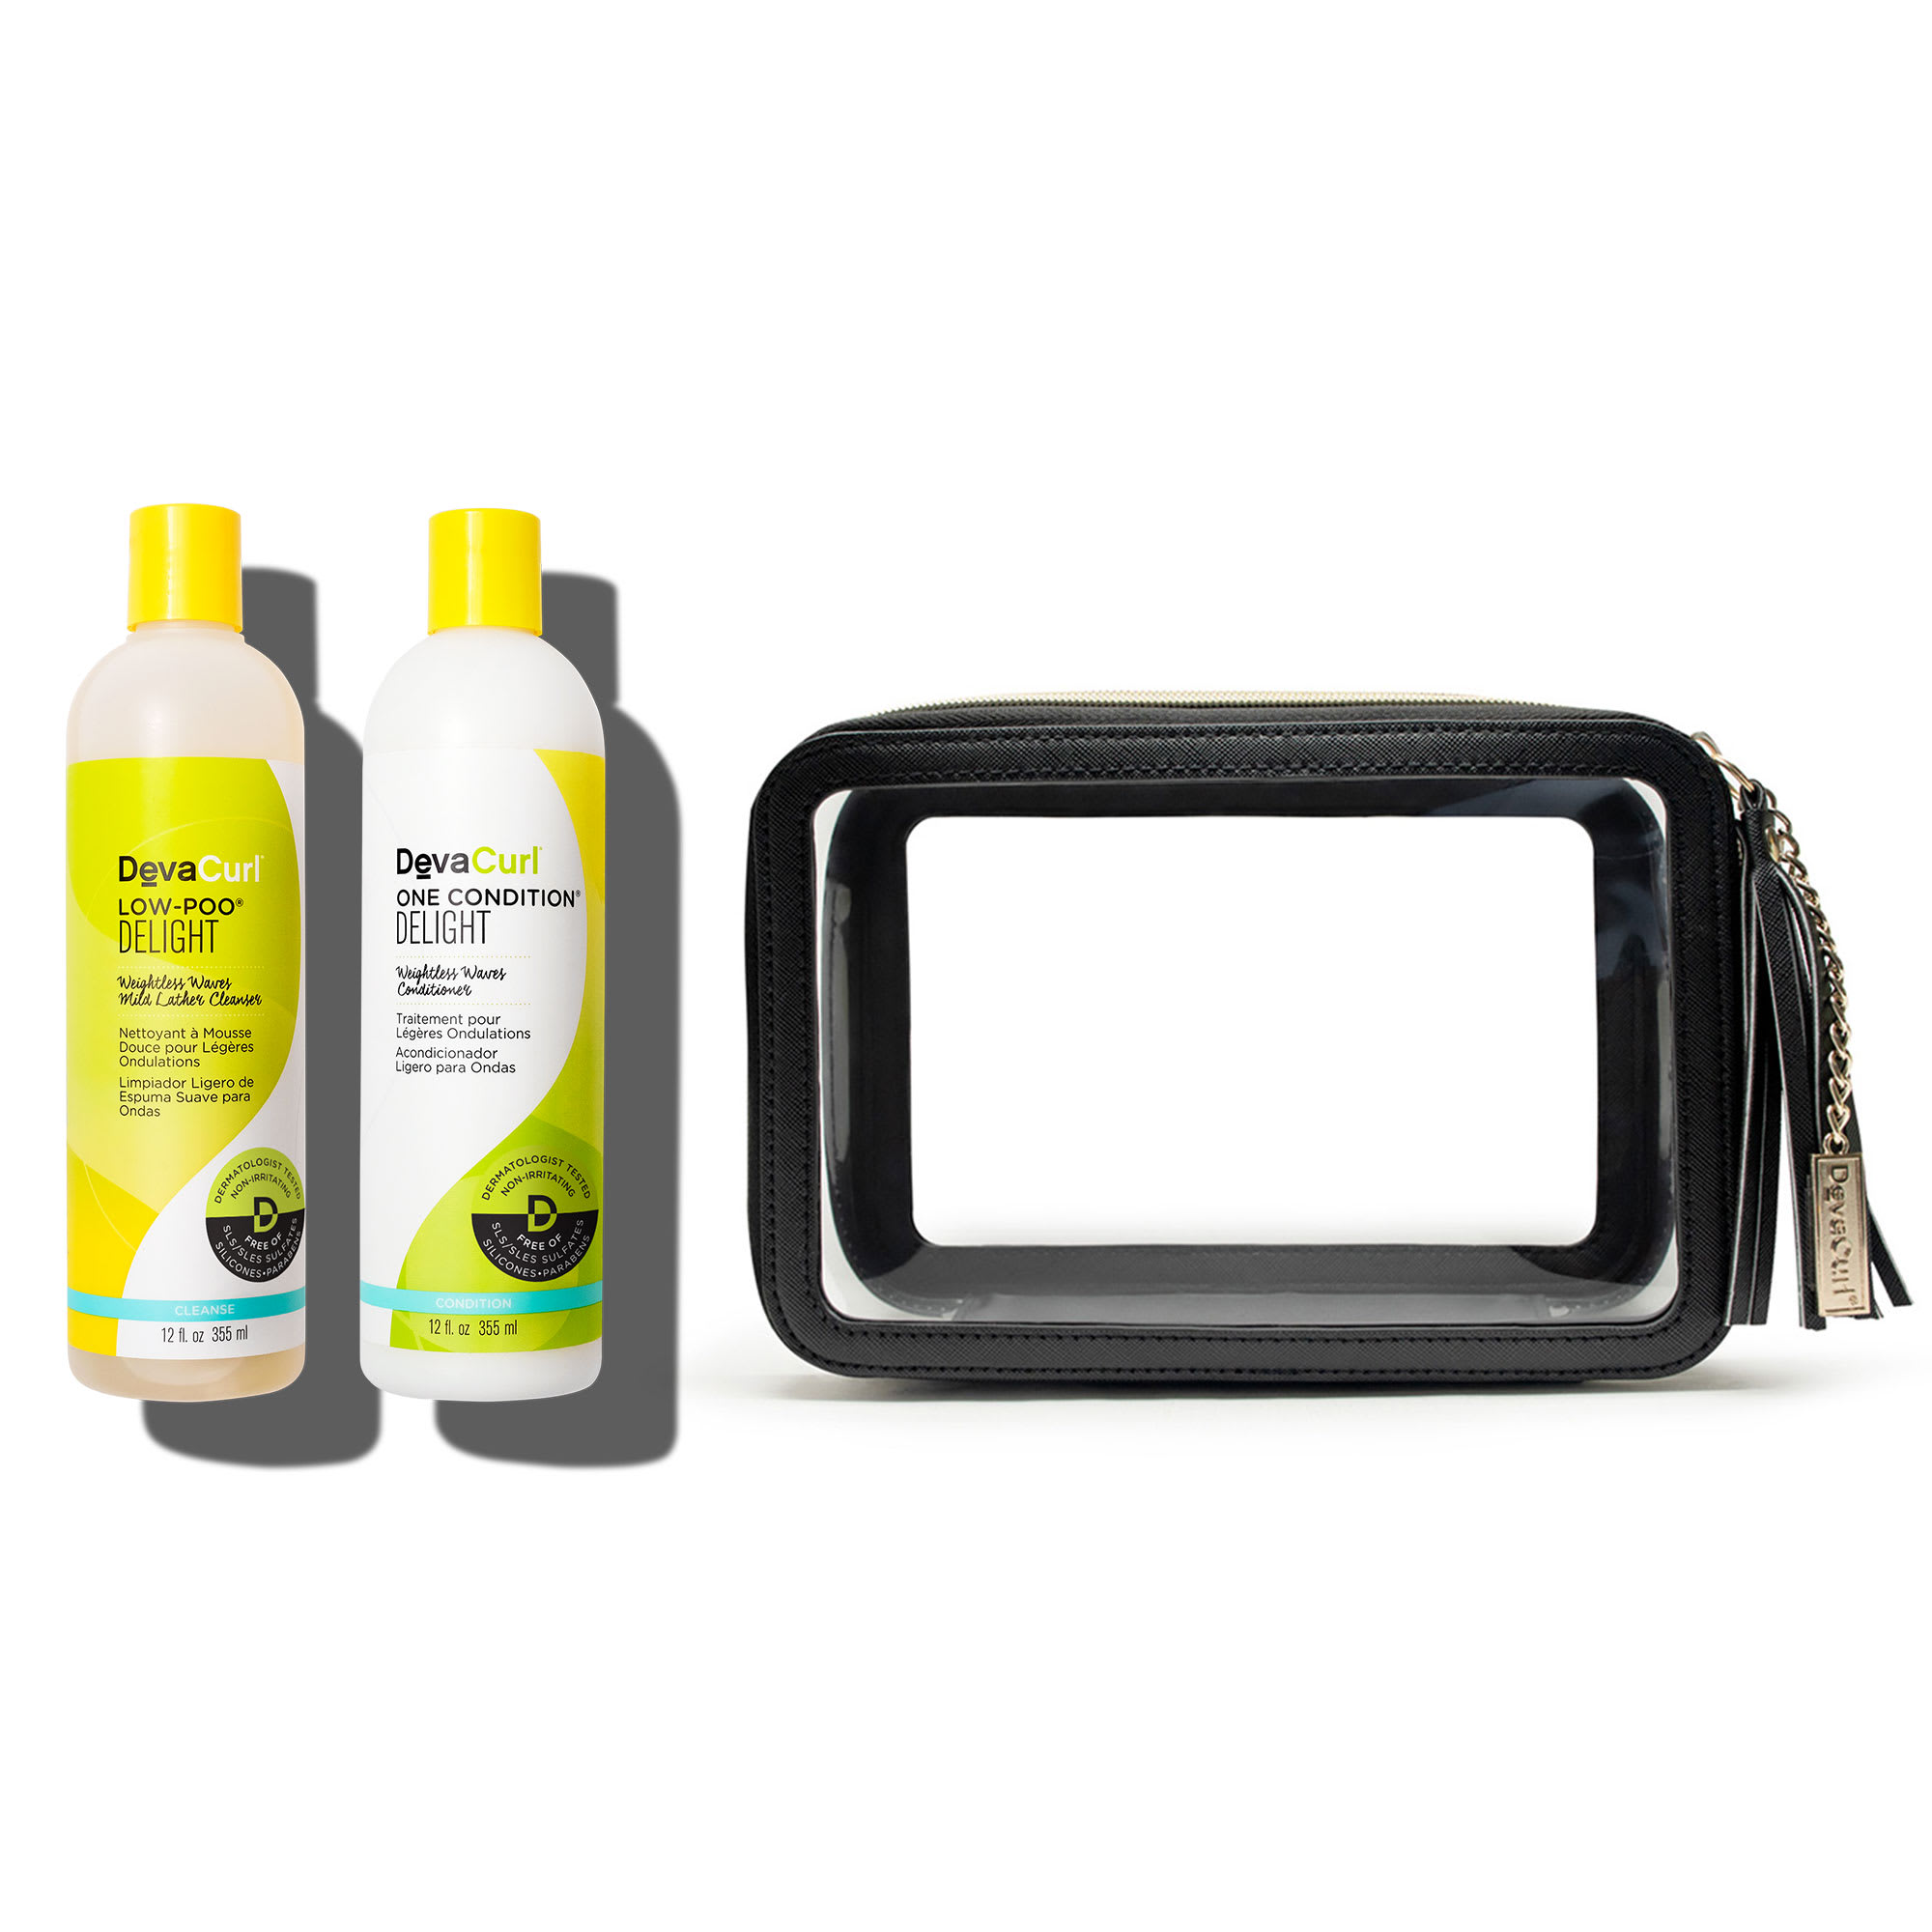 Delight cleanser and conditioner bottles + DevaTravel case